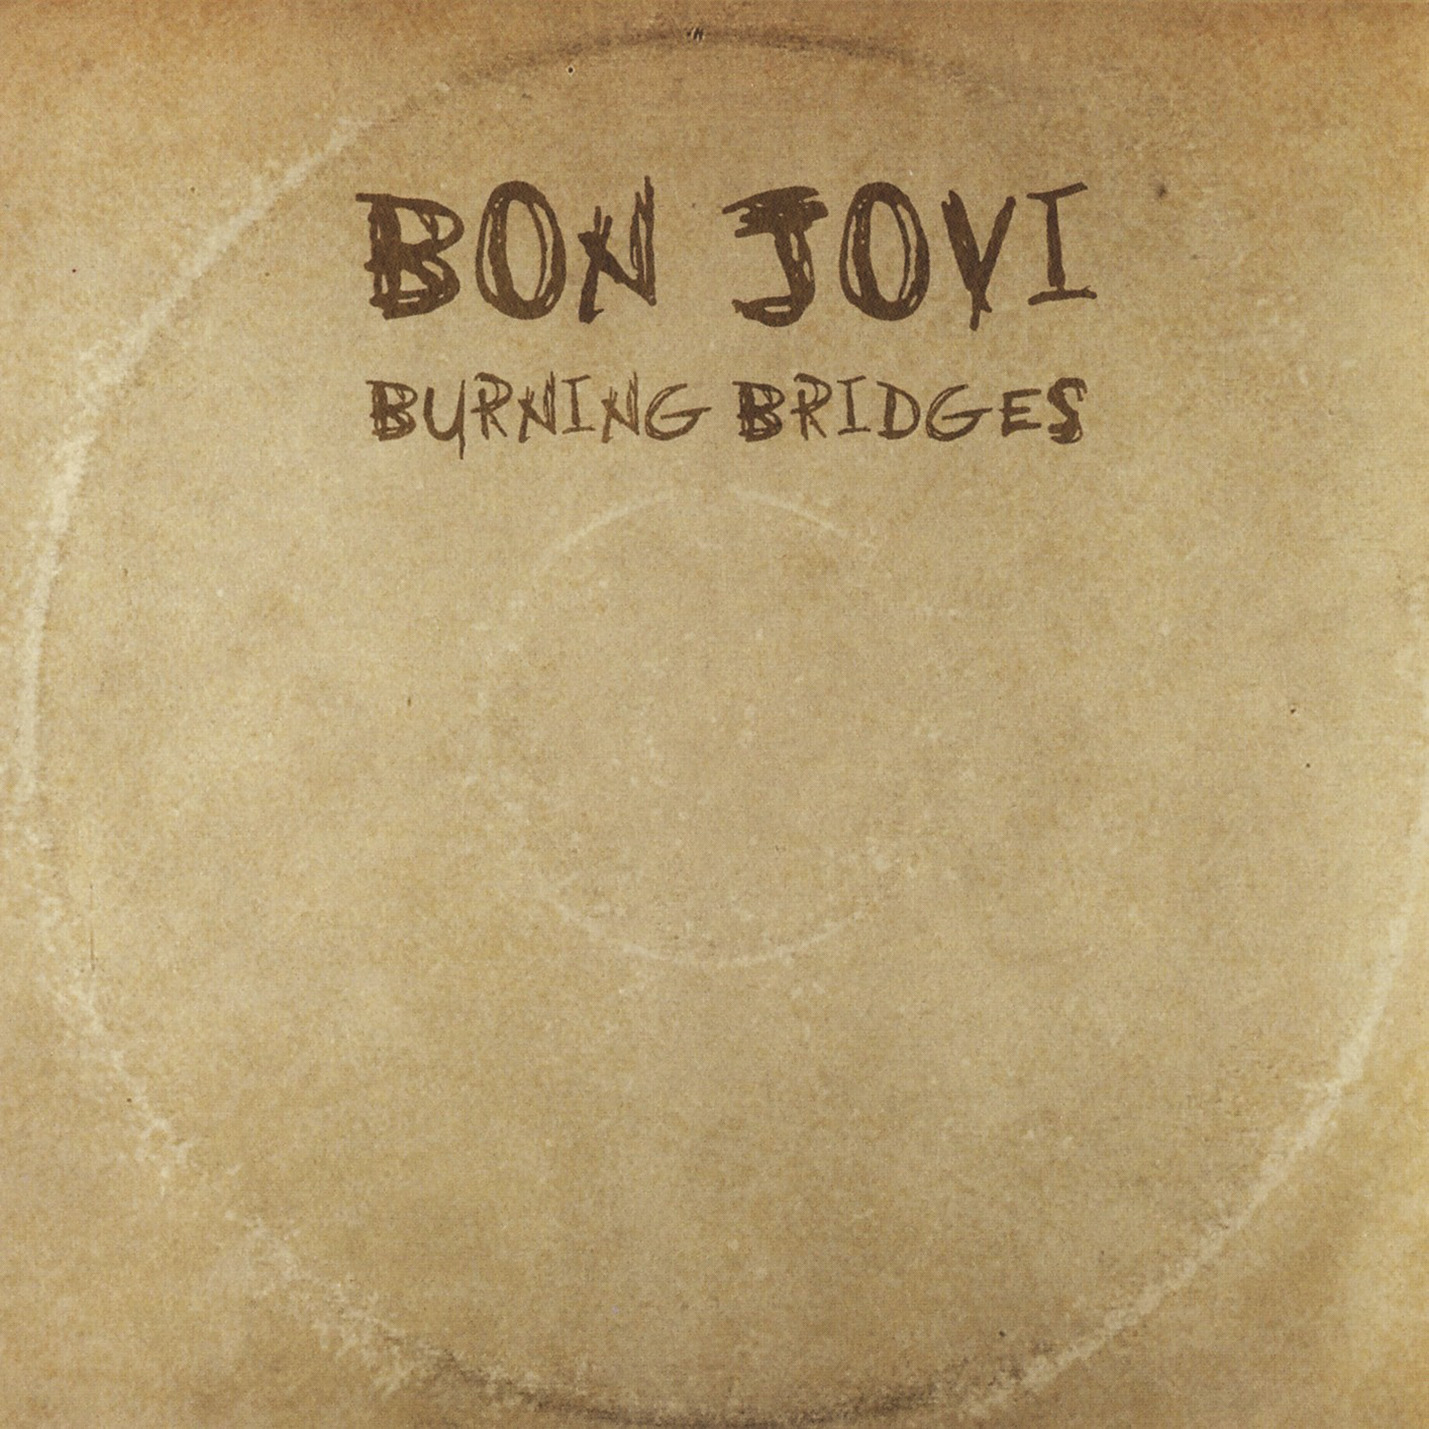 Download [Mp3]-[Hot New Album] อัลบั้มเต็ม Bon Jovi – Burning Bridges (2015) [Bonus Track Edition] CBR@320Kbps 4shared By Pleng-mun.com